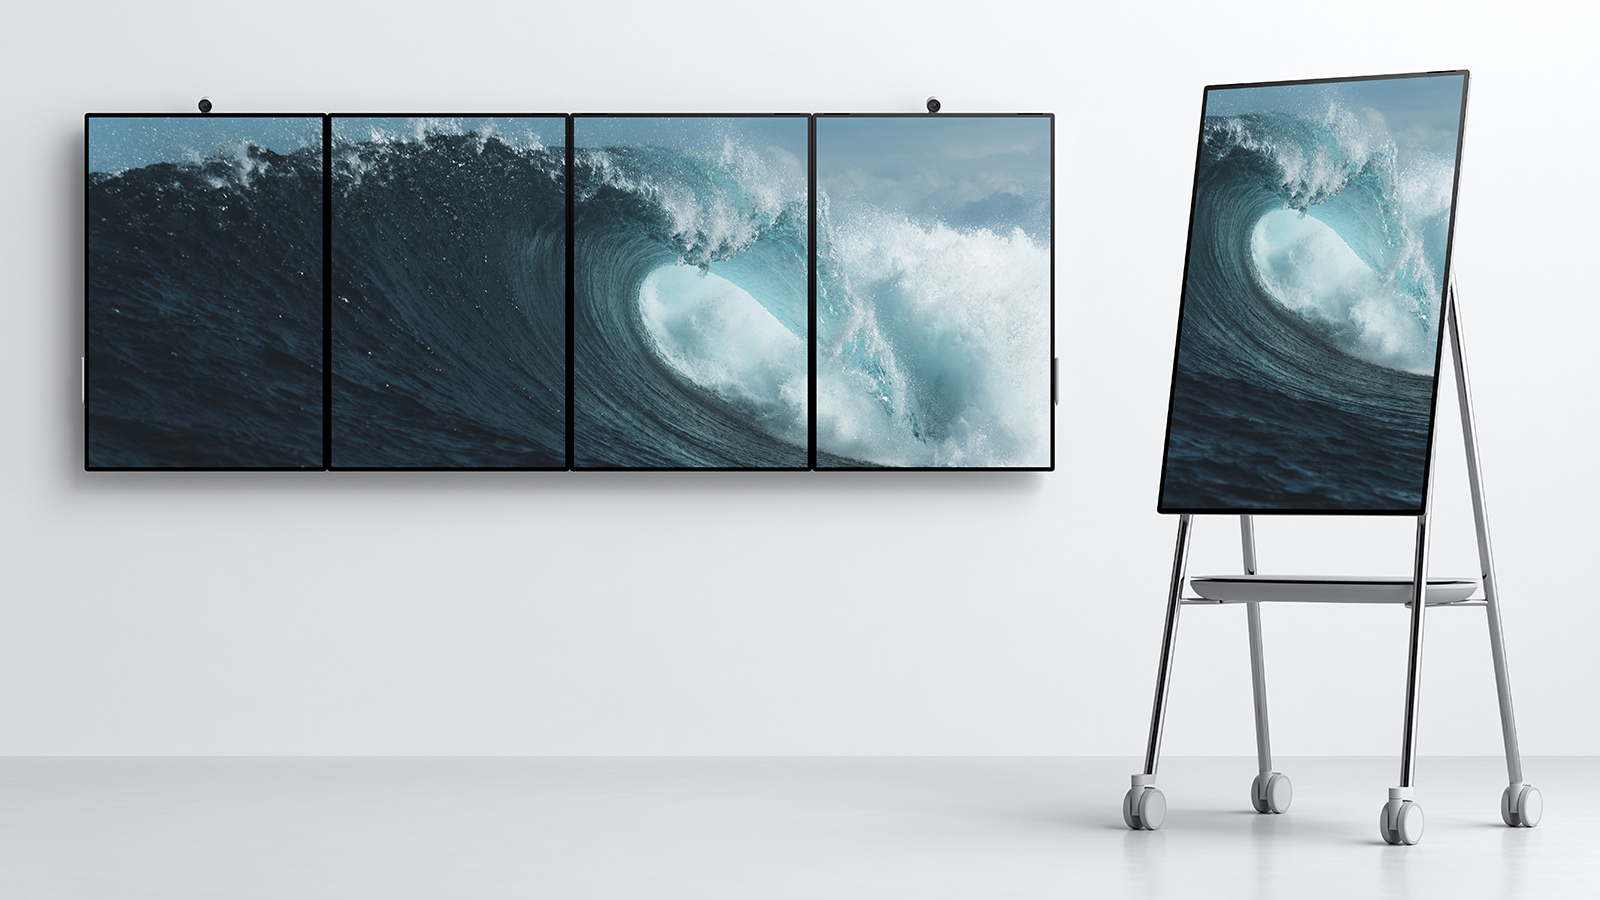 Four Surface Hub 2's tiled together on wall in portrait orientation, and one Surface Hub 2 rotated to a portrait orientation on a stand designed by Steelcase